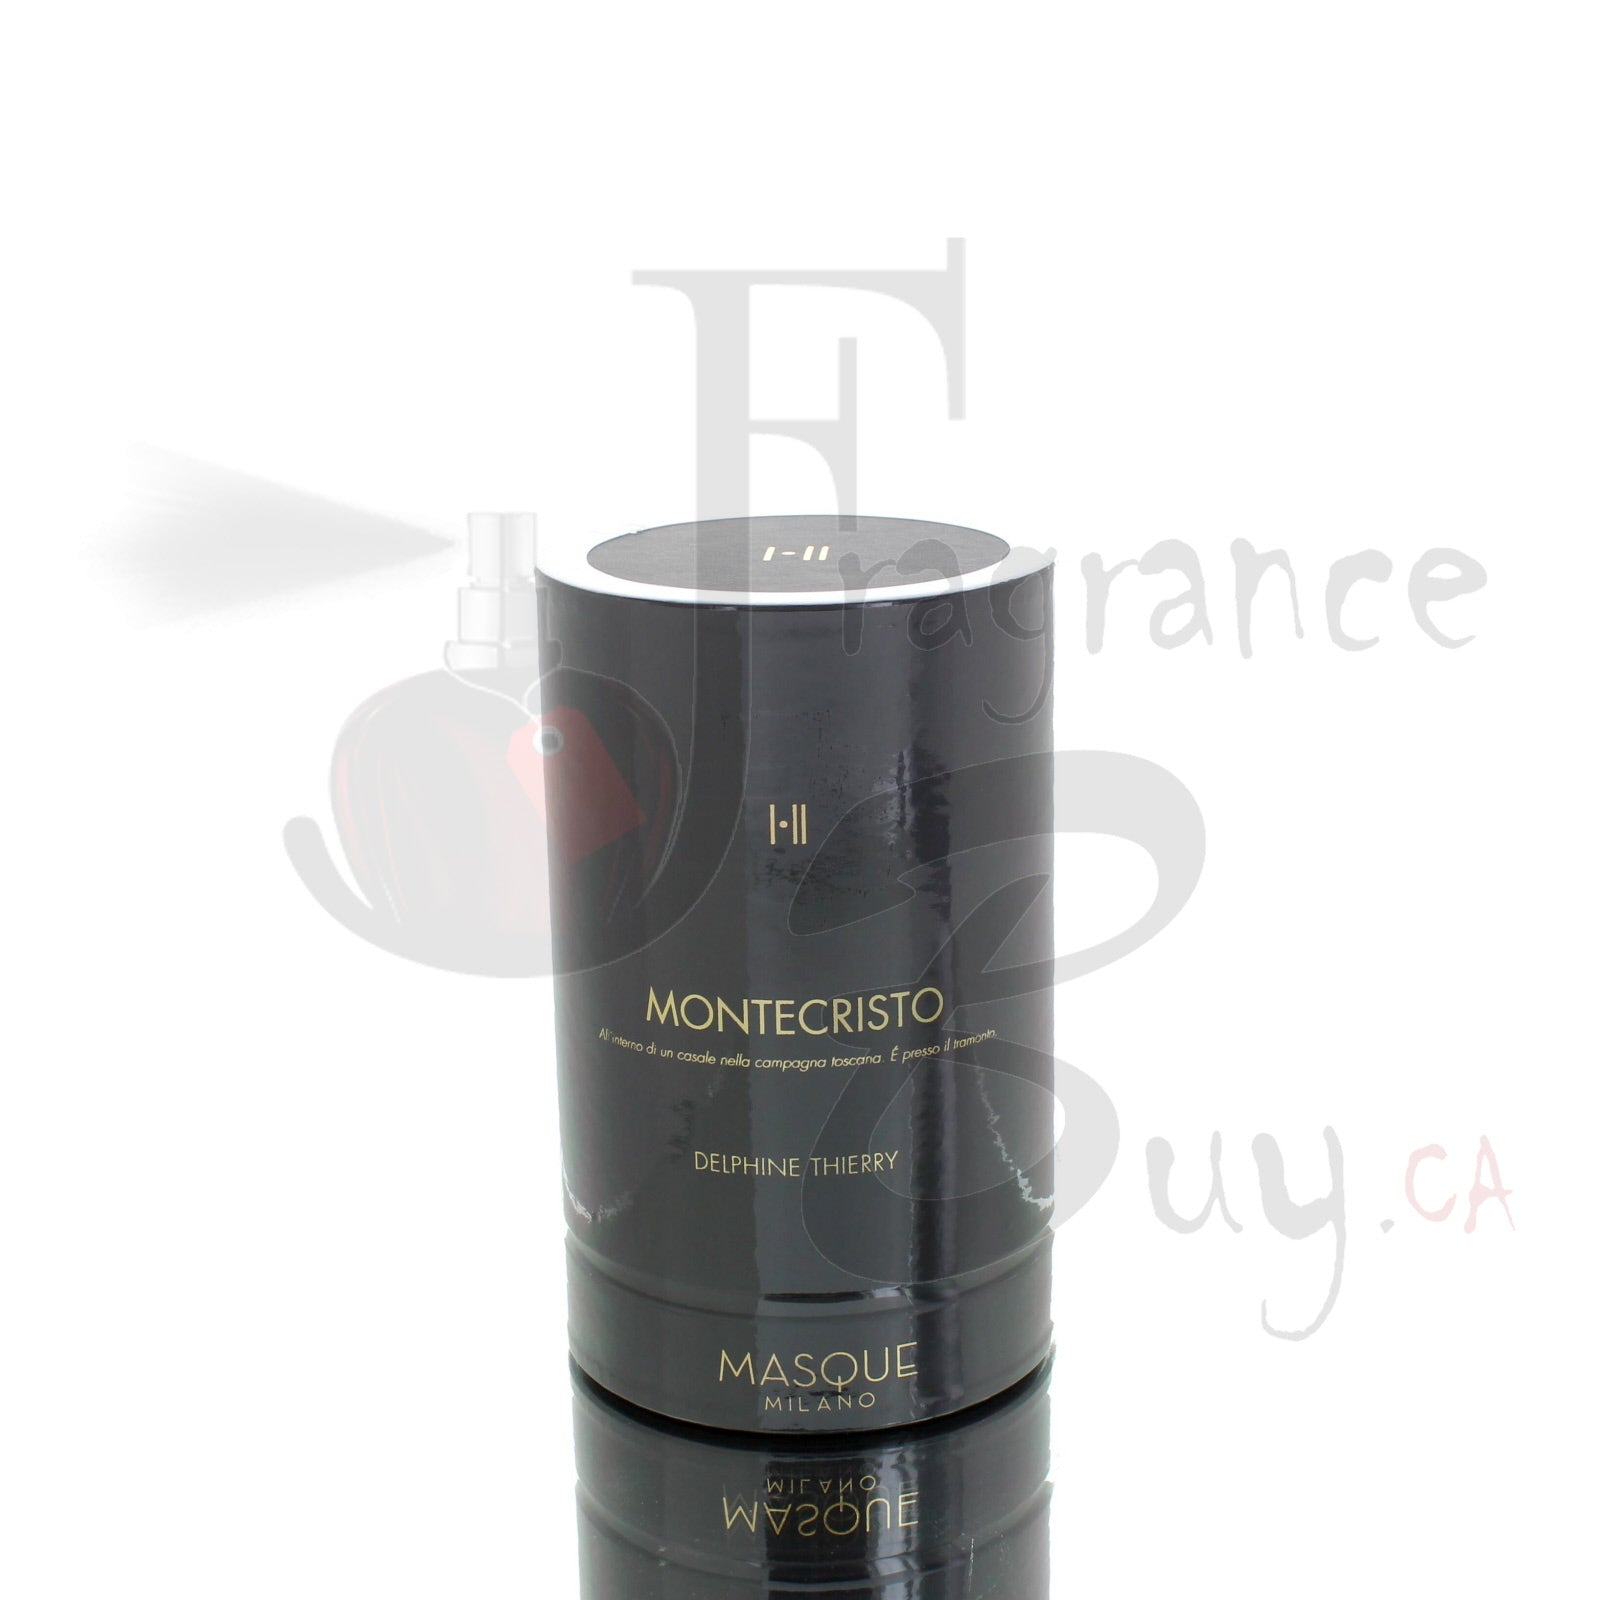 Masque Milano Montecristo For Man/Woman